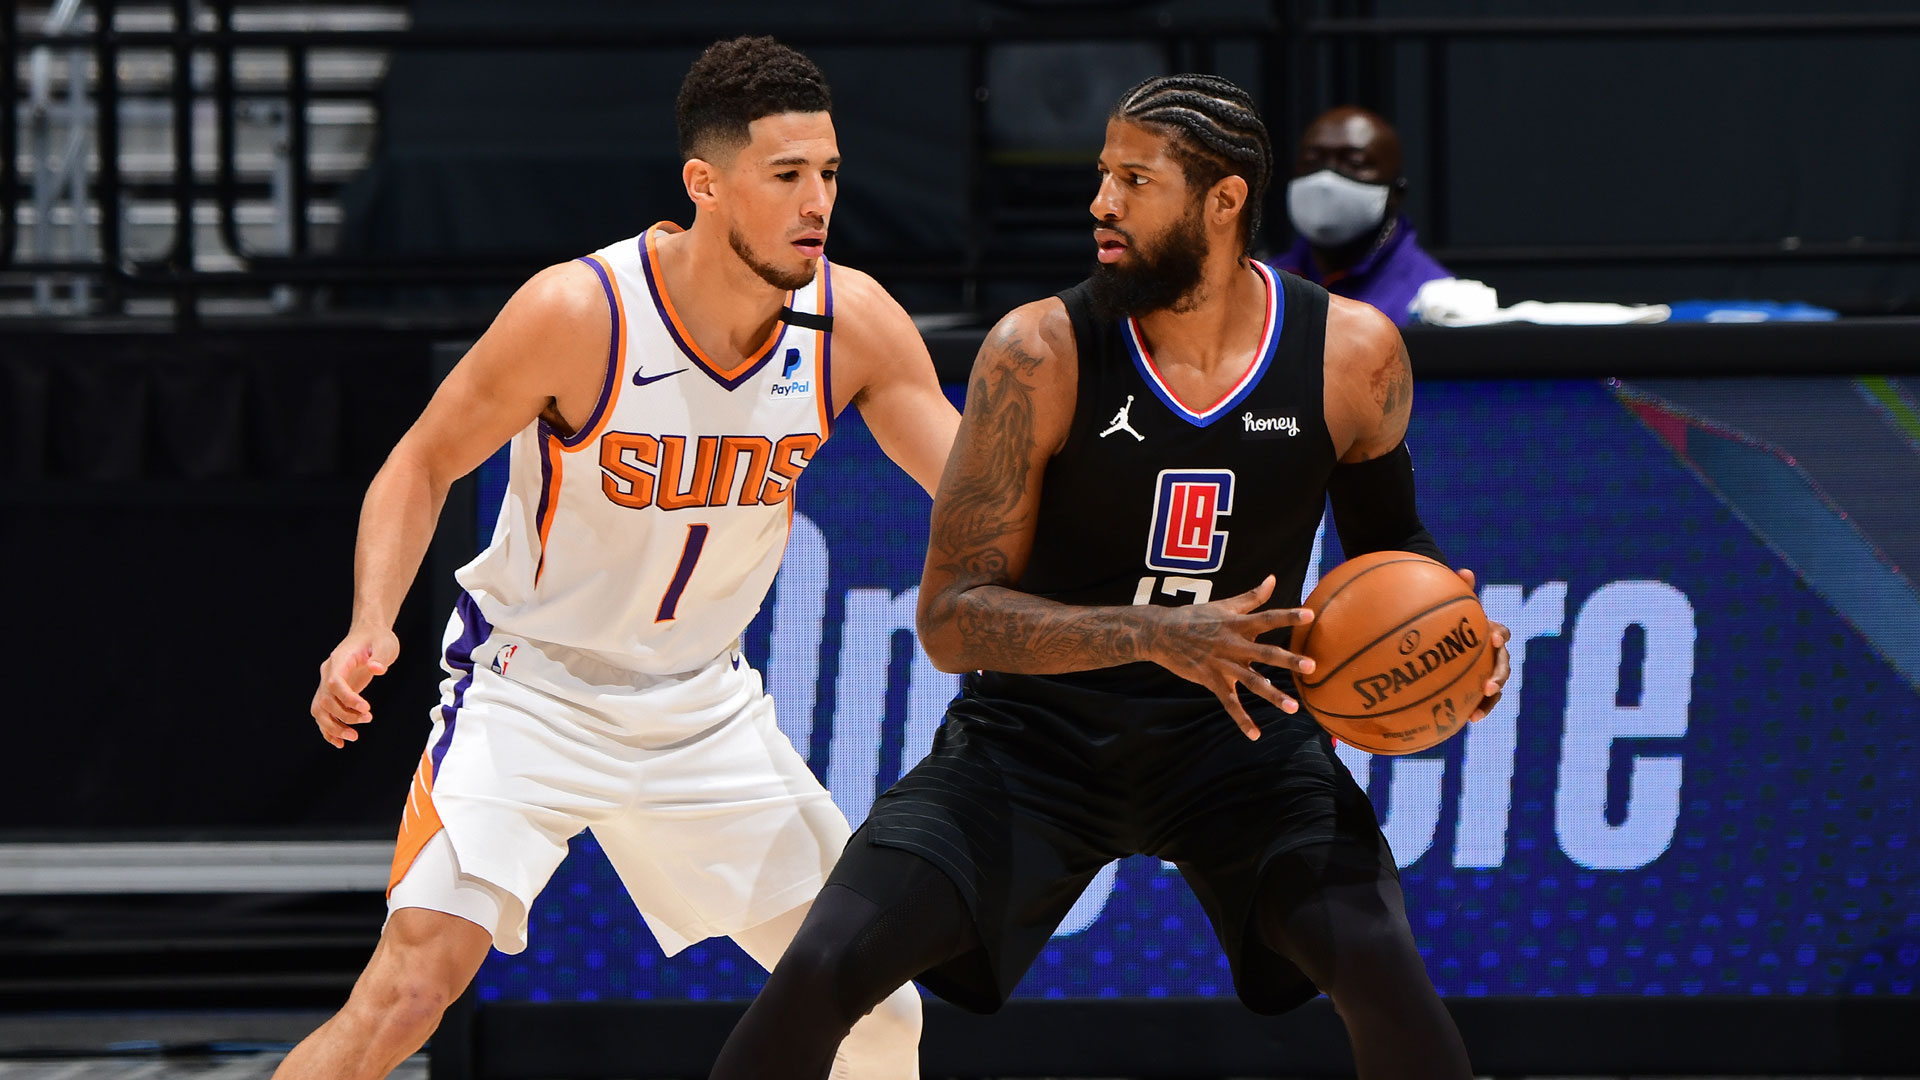 Series Preview: Suns, Clippers each peaking heading into conference finals